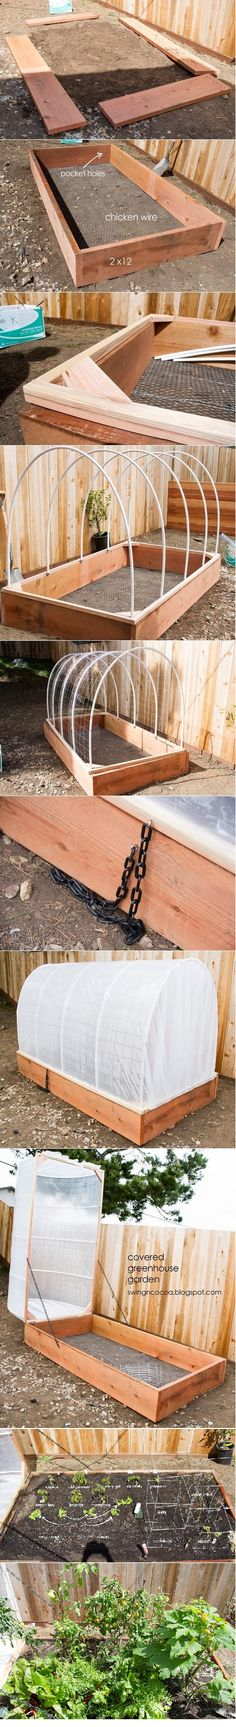 DIY Covered Greenhouse Garden I have been thinking about something similar for a cover, this looks perfect